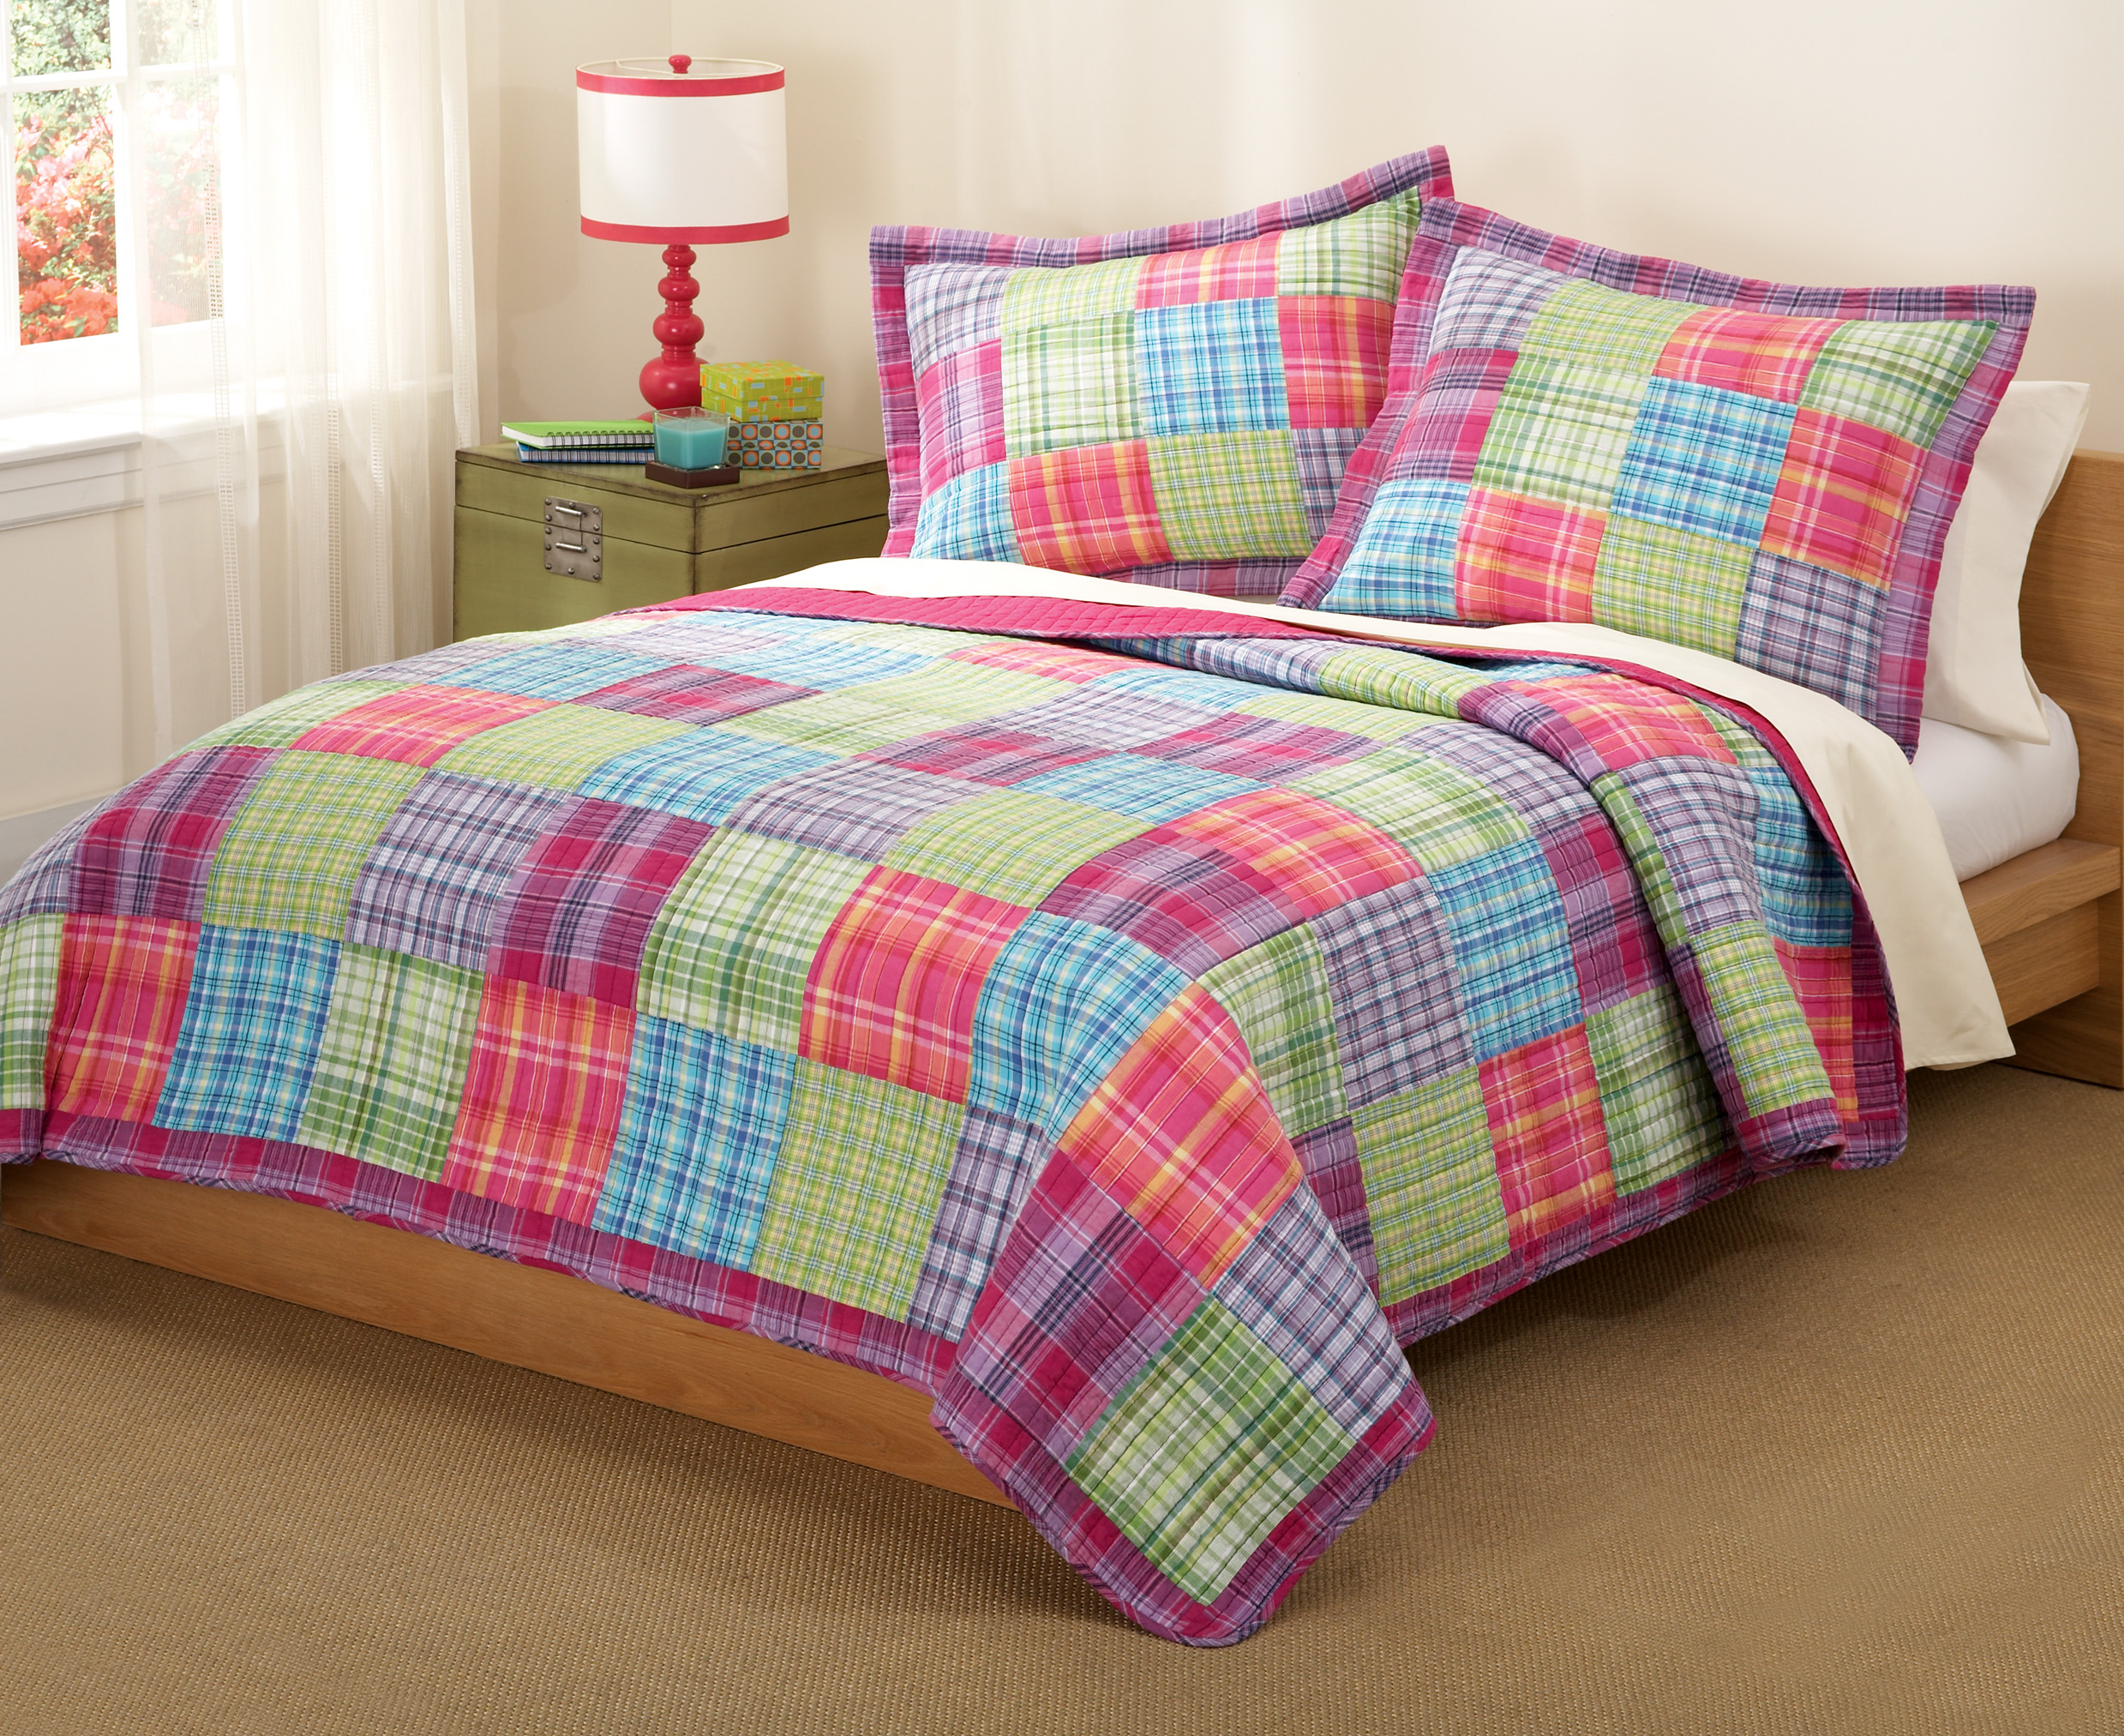 Modern bed sheets pattern - Colorful Pattern Of Bed Sheet With Simple Brown Bed Frame And Carpet Small Lamp